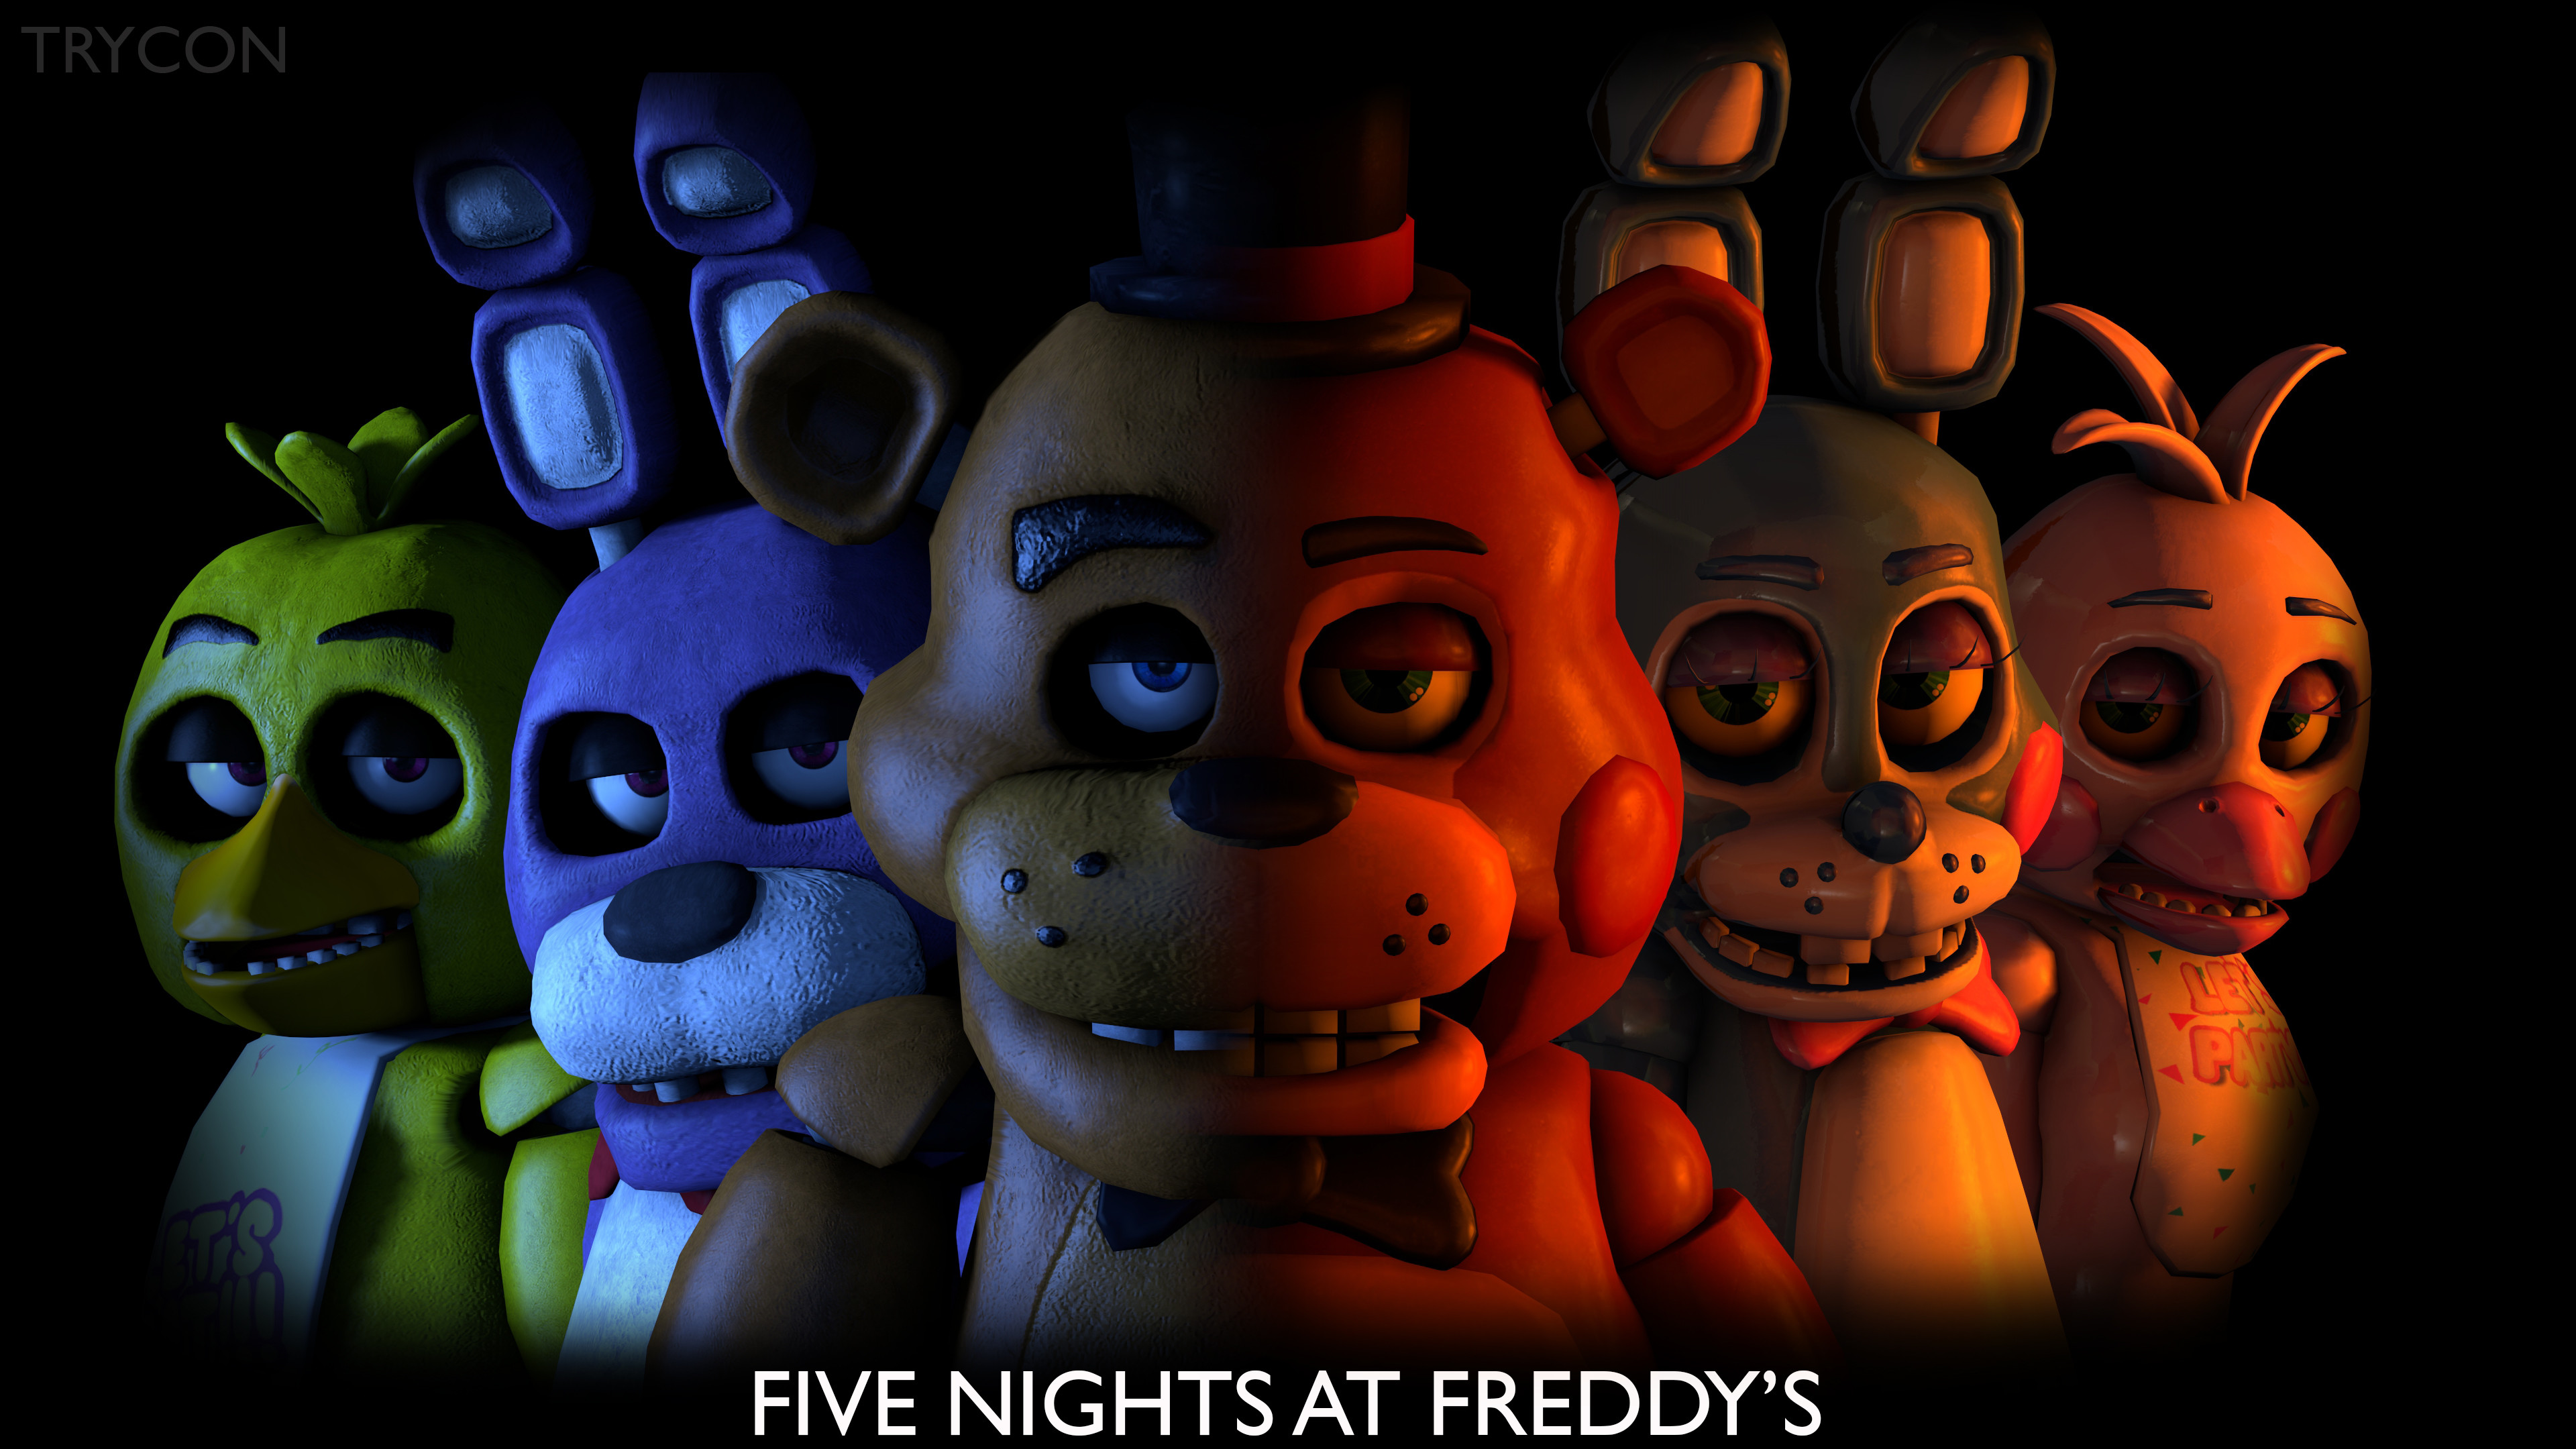 Res: 3840x2160, ... Five Nights at Freddy's Banner by Trycon1980